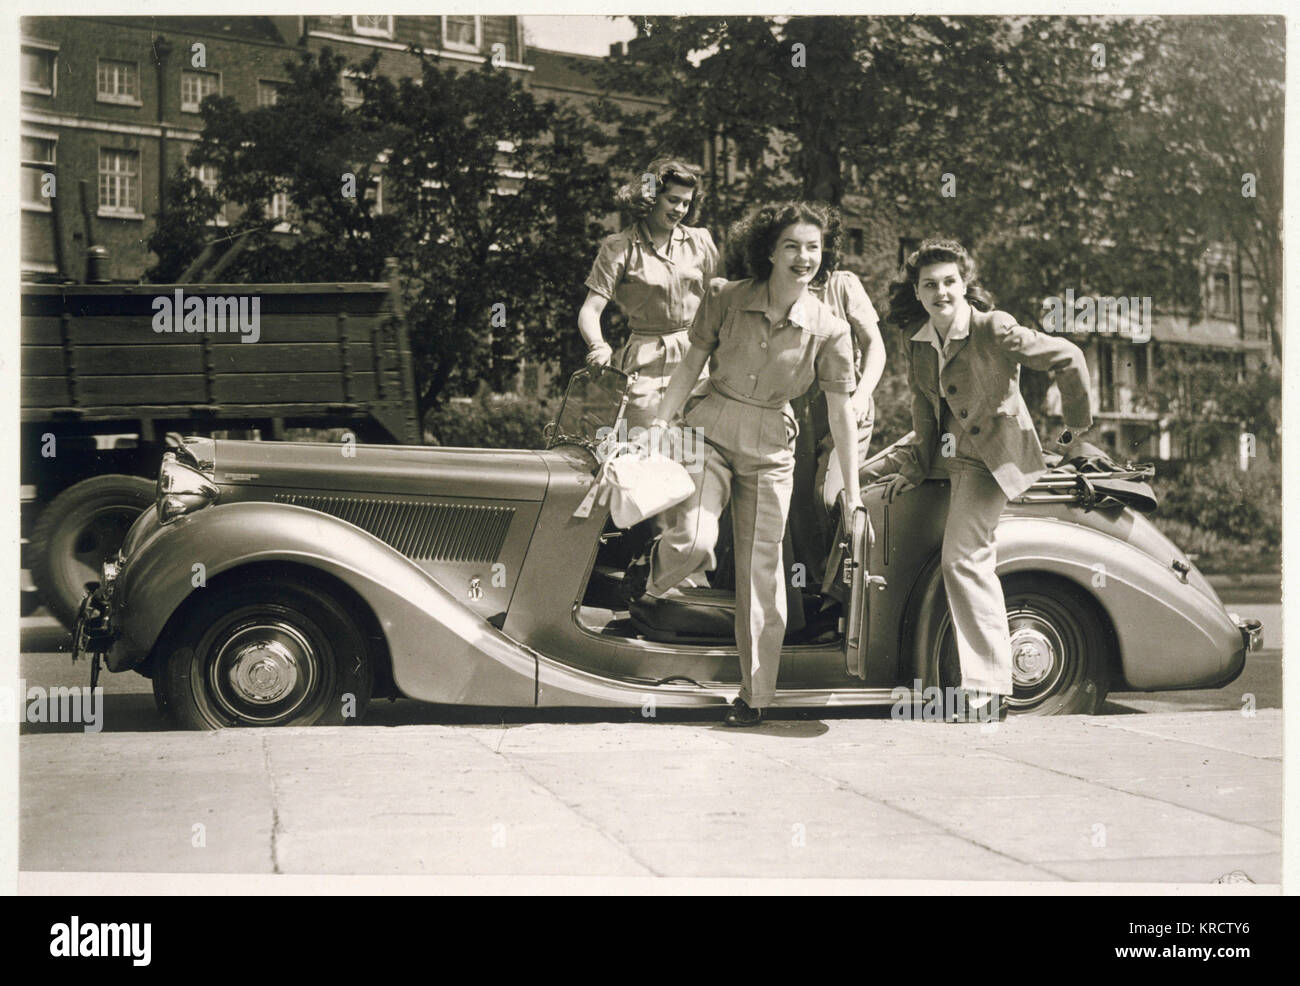 Four glamorous war-time women wearing trouser suits leap from an open top car Date: early 1940s Stock Photo